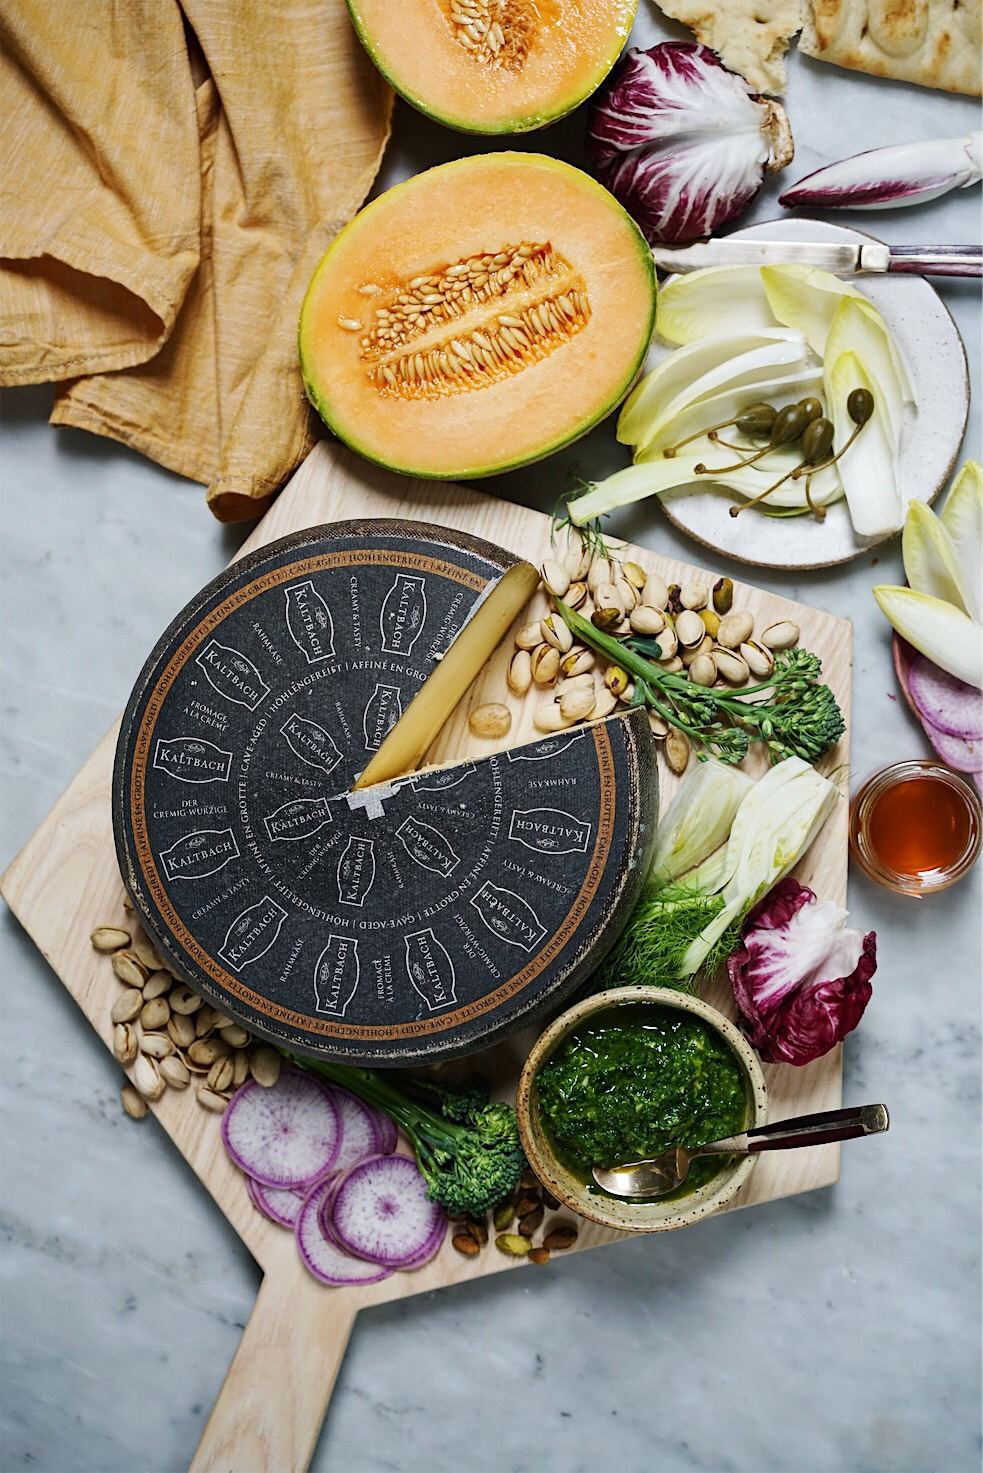 Emmi Roth Le Cremeux Giveaway (personalized wheel of cheese!)